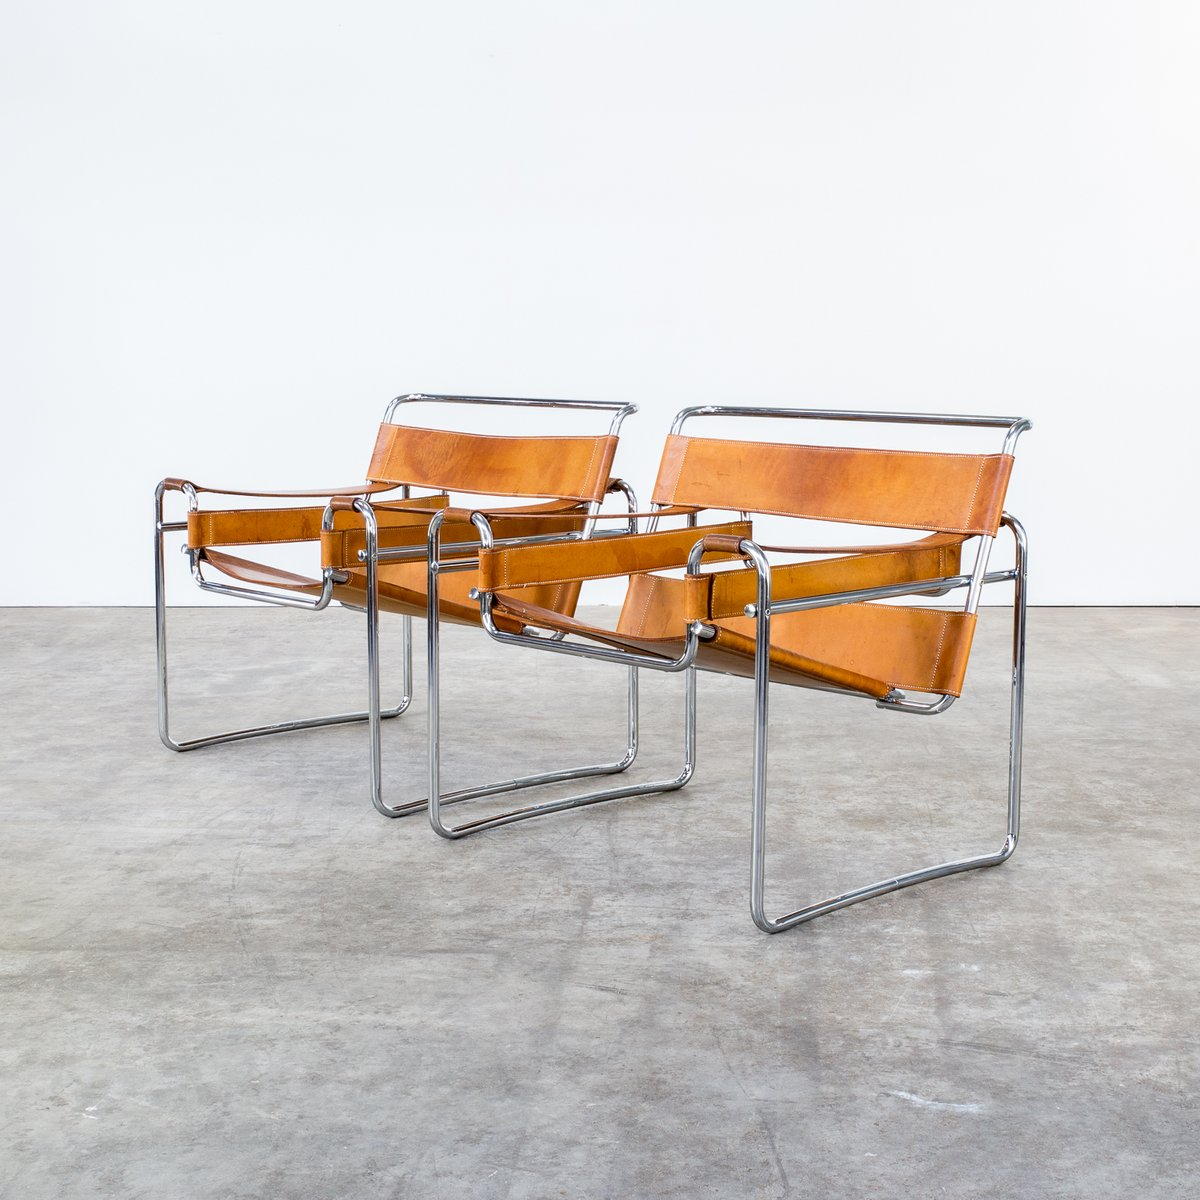 wassily b3 cognac leather chairs by marcel breuer for gavina 1960s set of 2 for sale at pamono. Black Bedroom Furniture Sets. Home Design Ideas